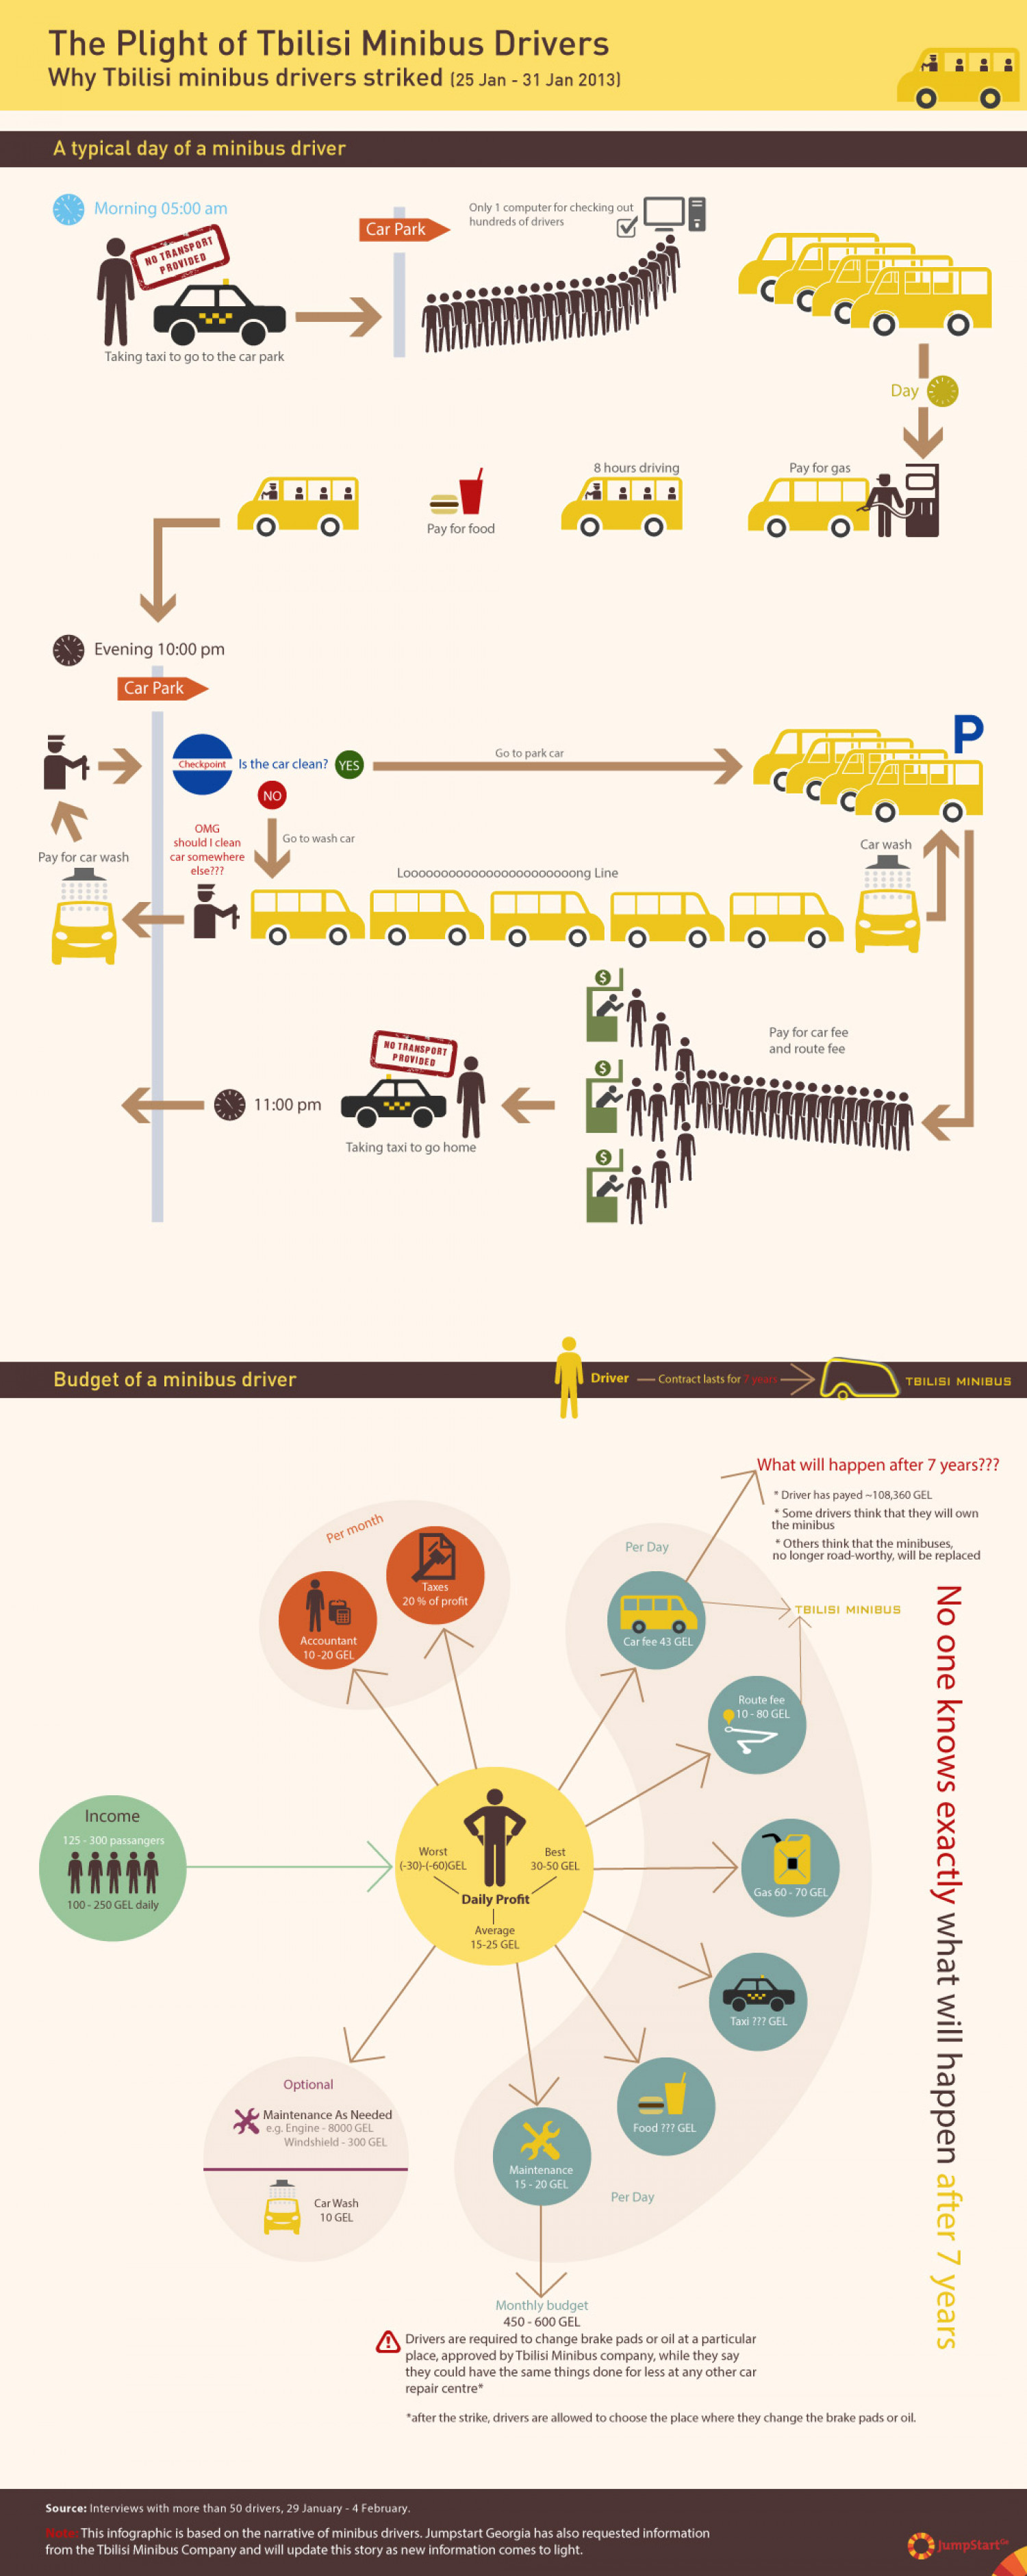 The Plight of Tbilisi Minibus Drivers Infographic